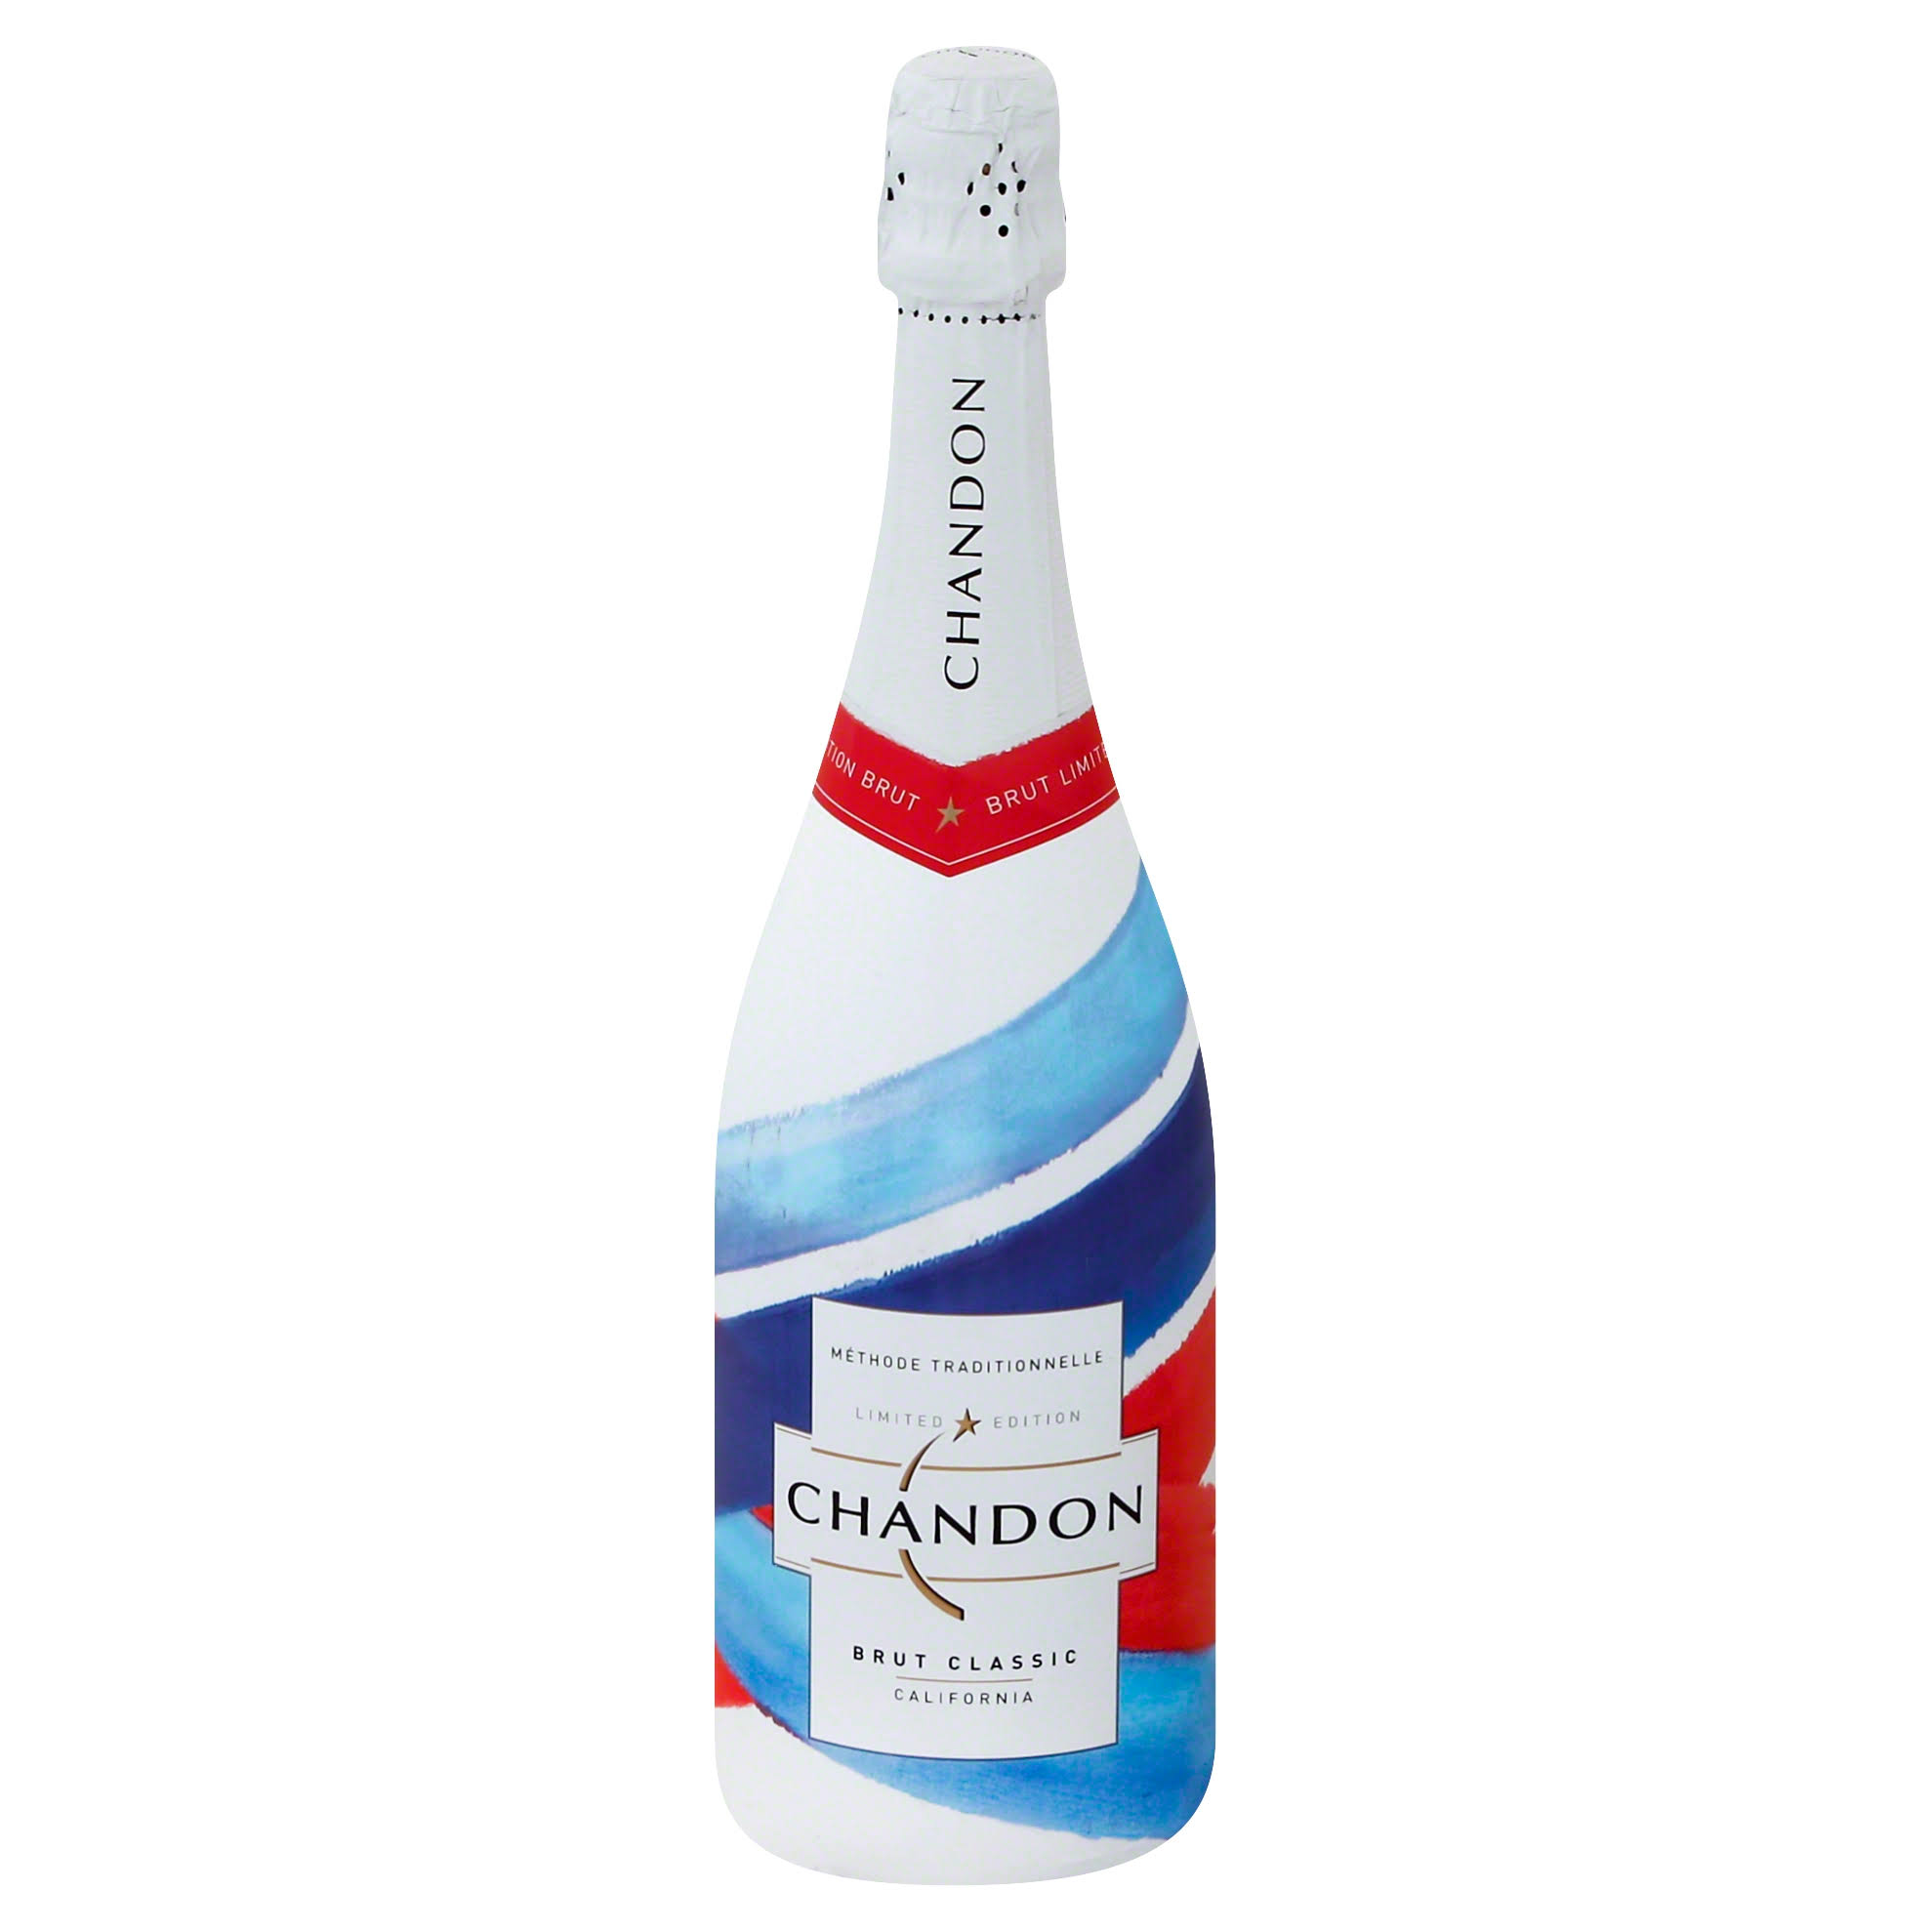 Chandon Brut Classic - California